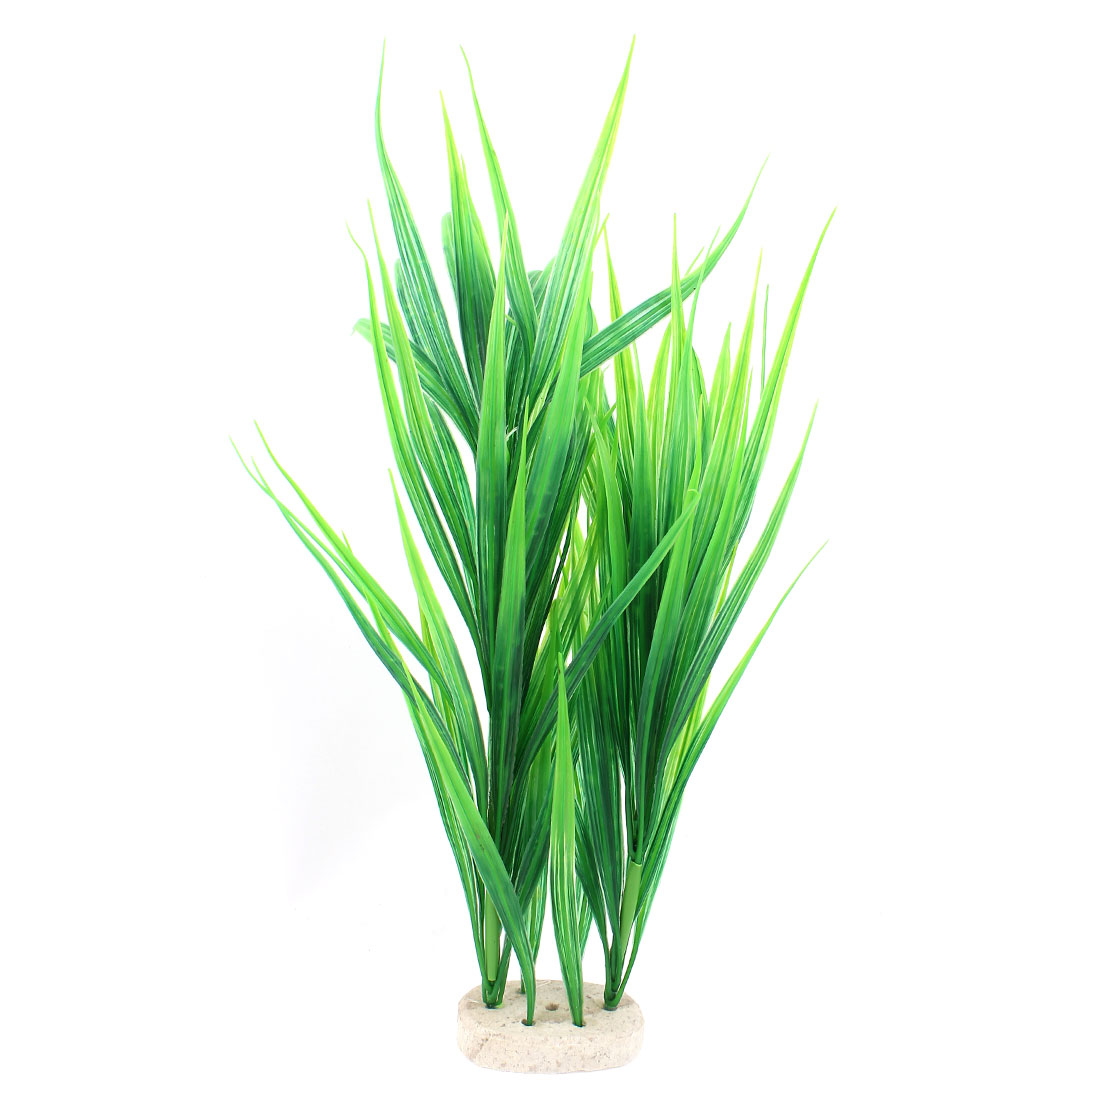 Plastic Fish Tank Plant Grass Aquarium Green Decor